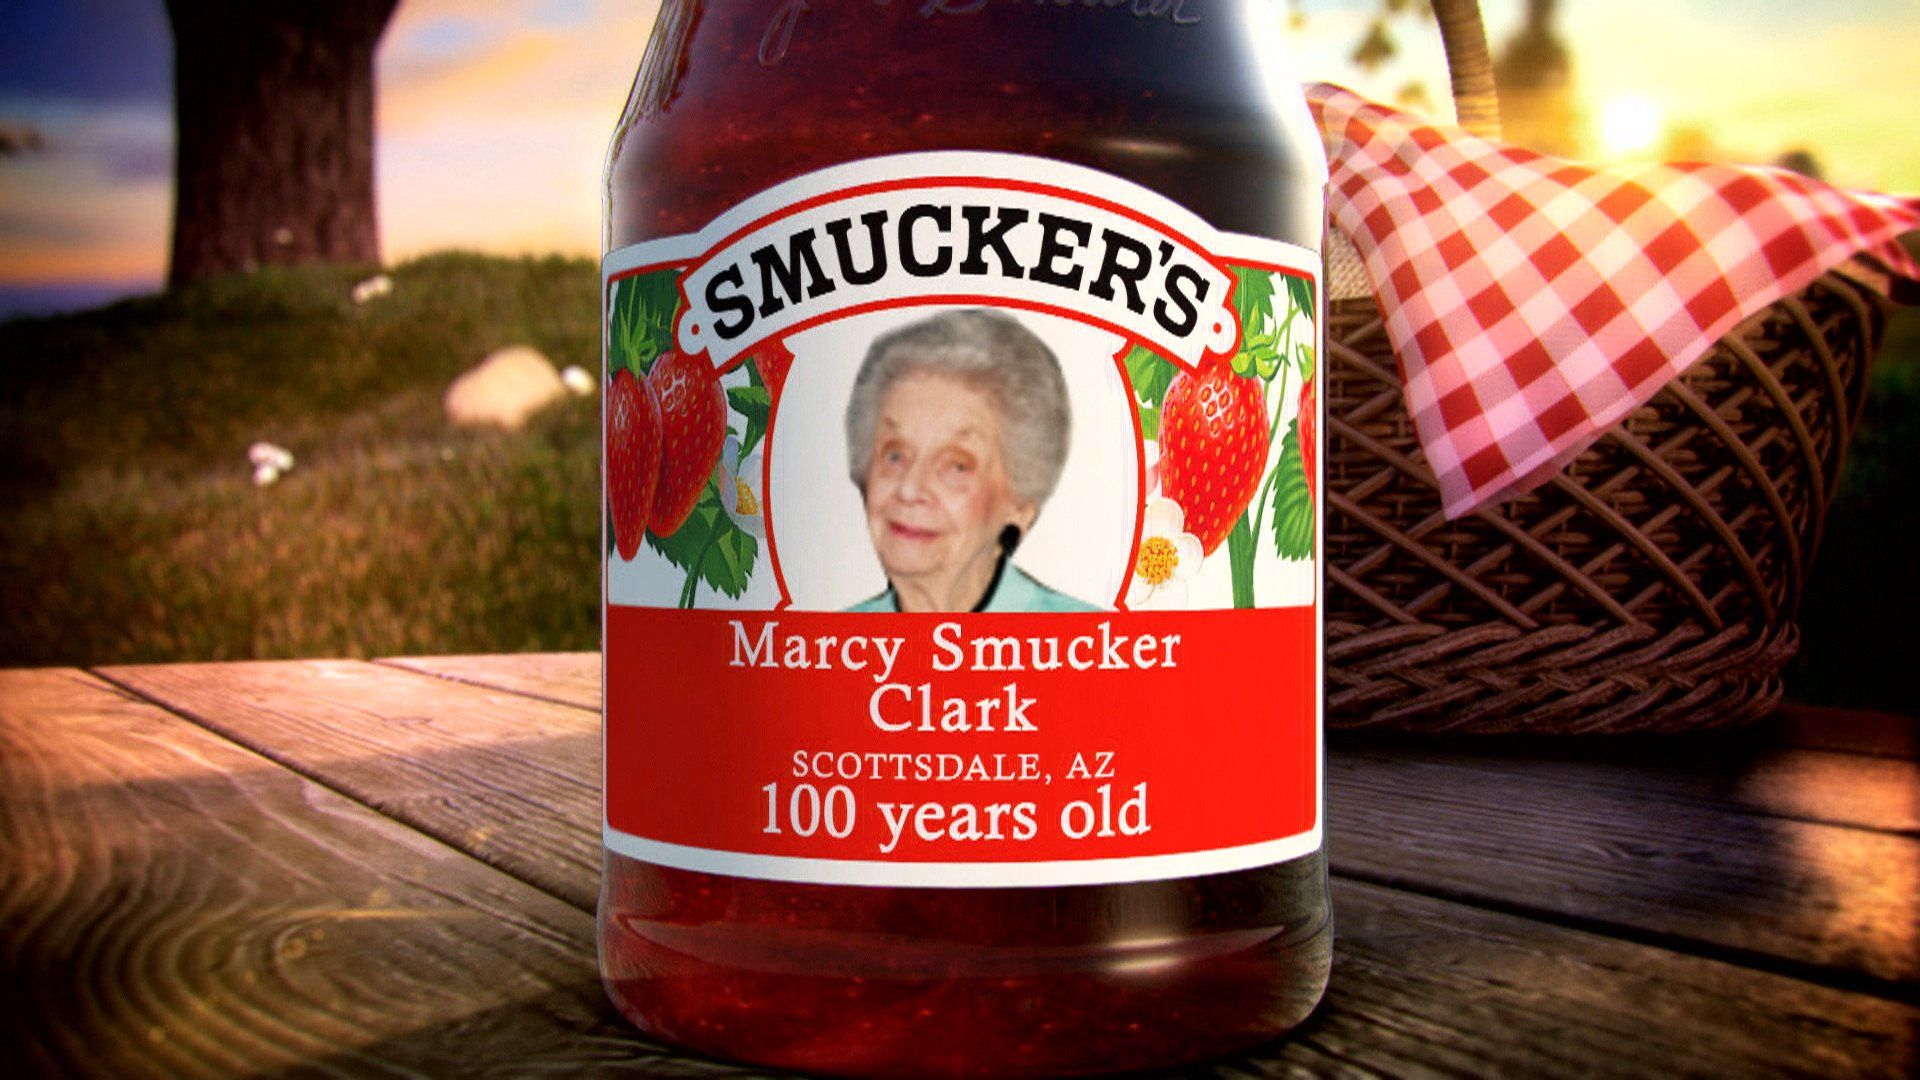 Smuckers Birthday Label Template Willard Scott Marks Milestone Birthdays today